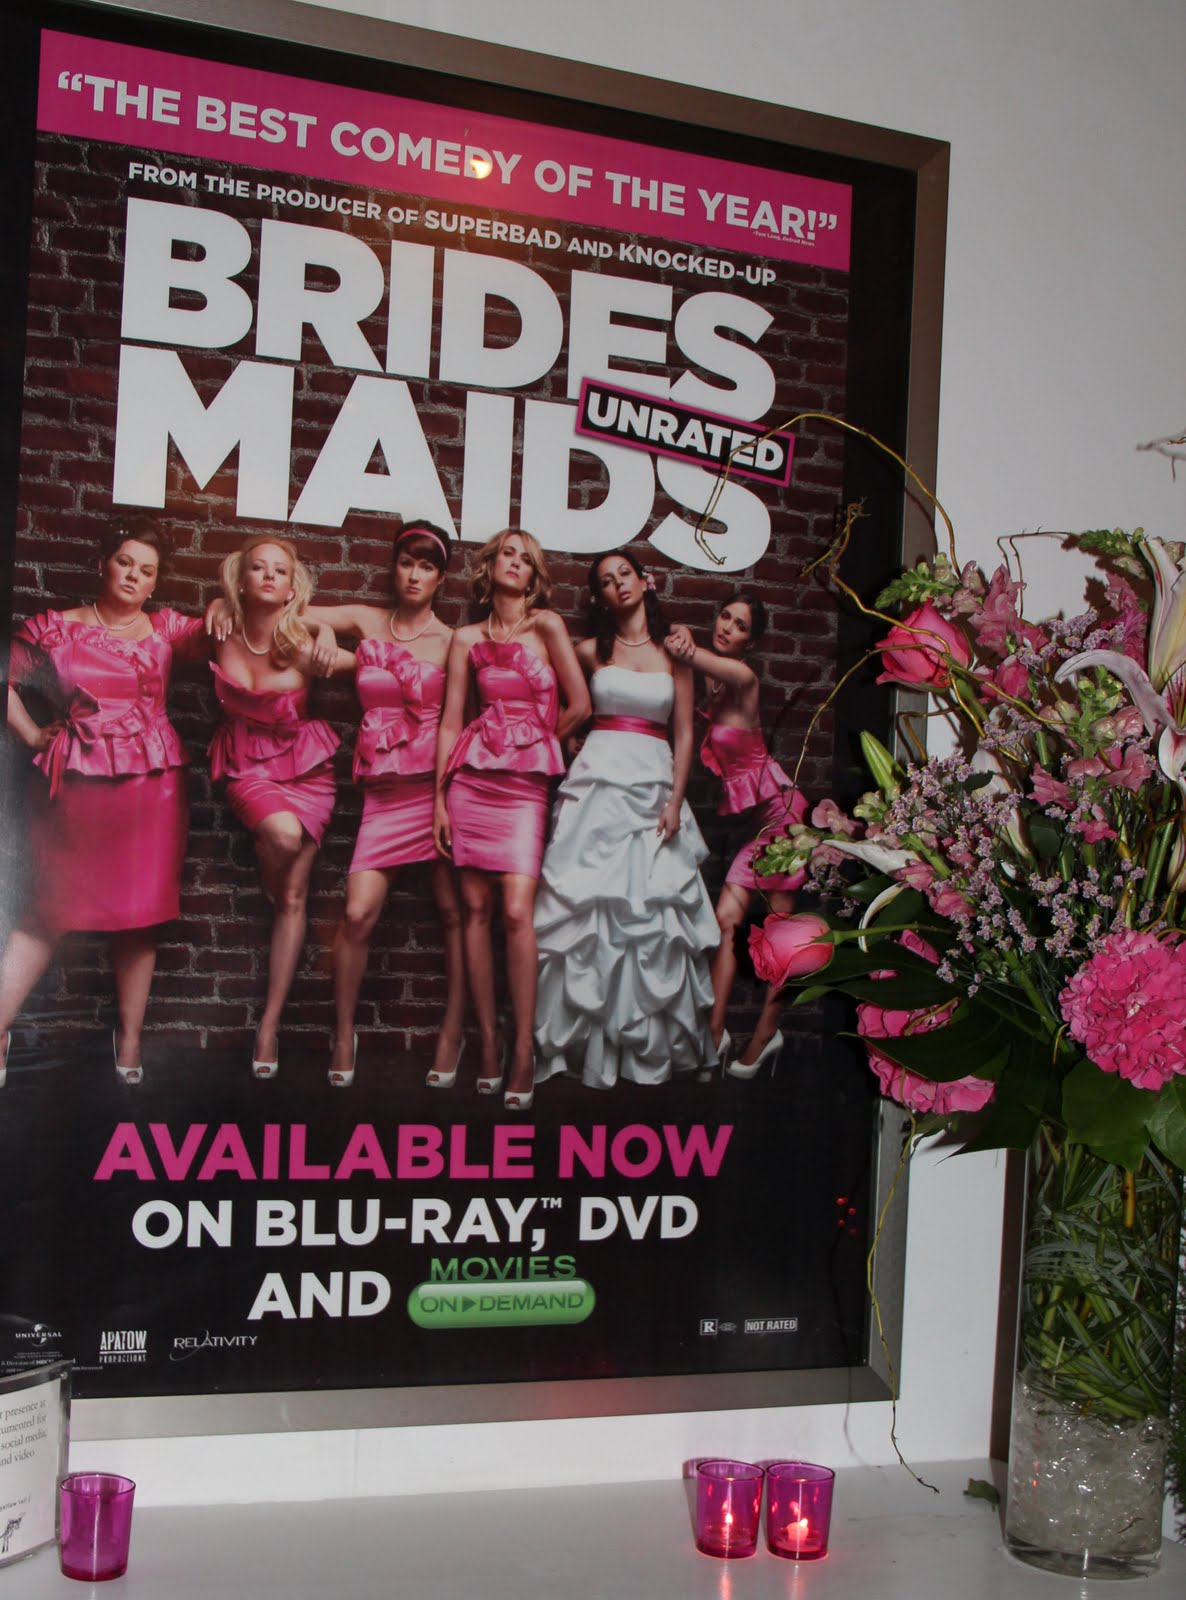 National Bridesmaid S Day Celebration And Release Of Bridesmaids On Movies Demand Dvd Blu Ray